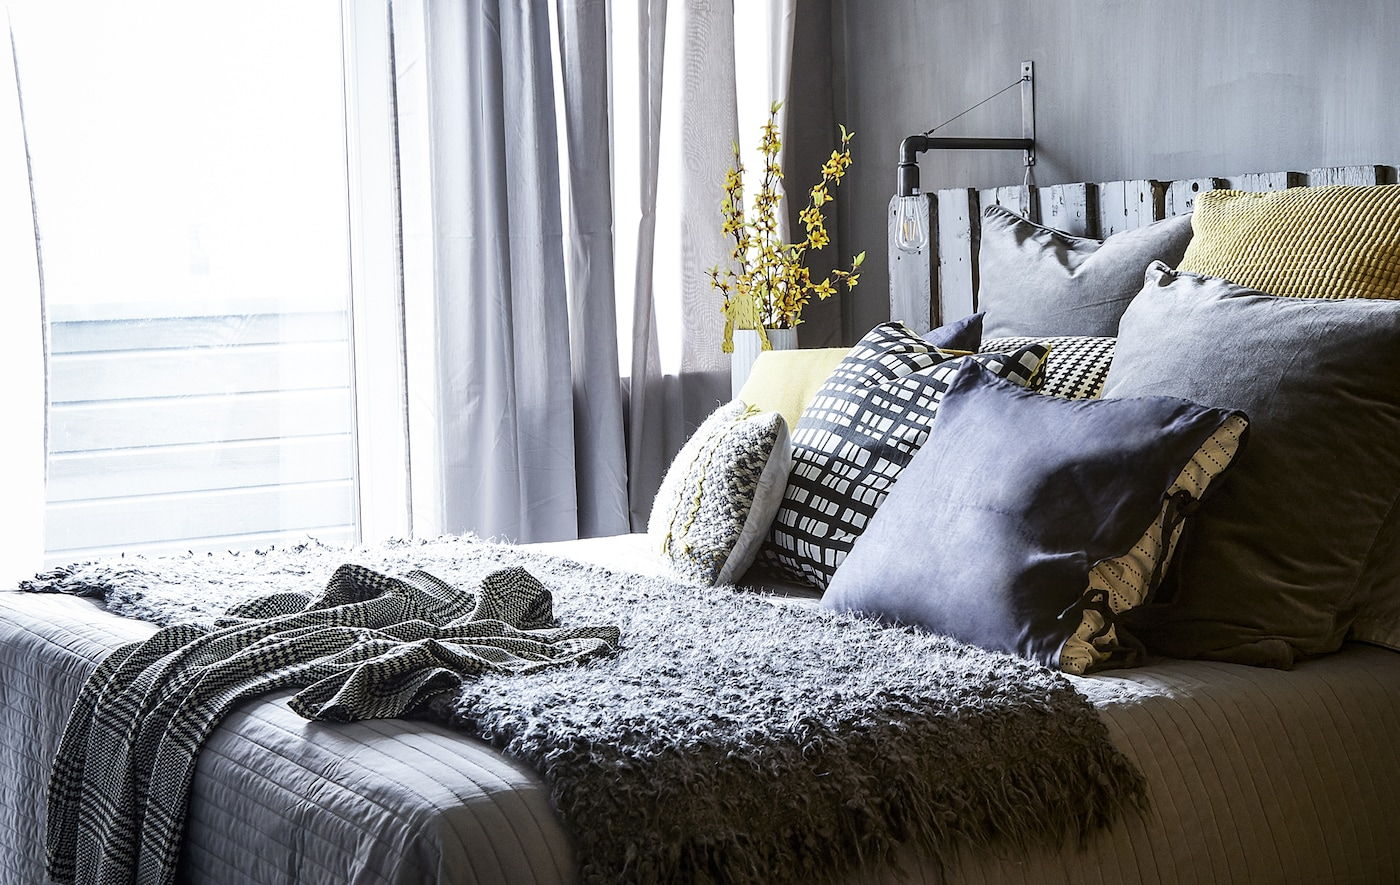 A bedroom with grey decor and yellow cushions.